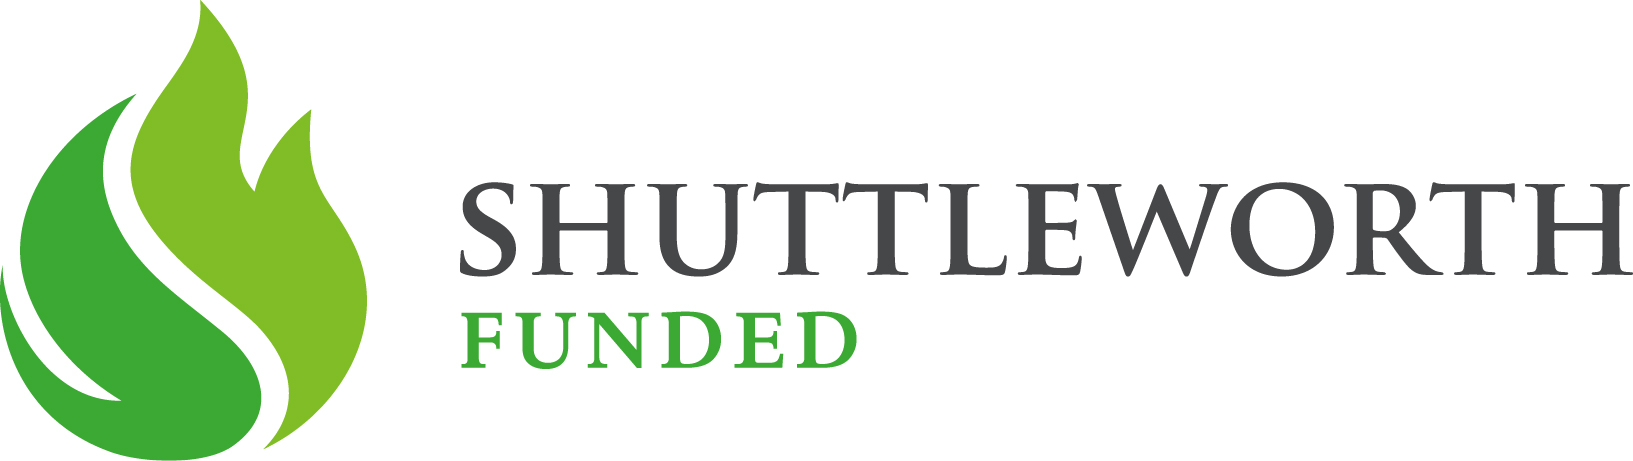 Funded by the Shuttleworth Foundation